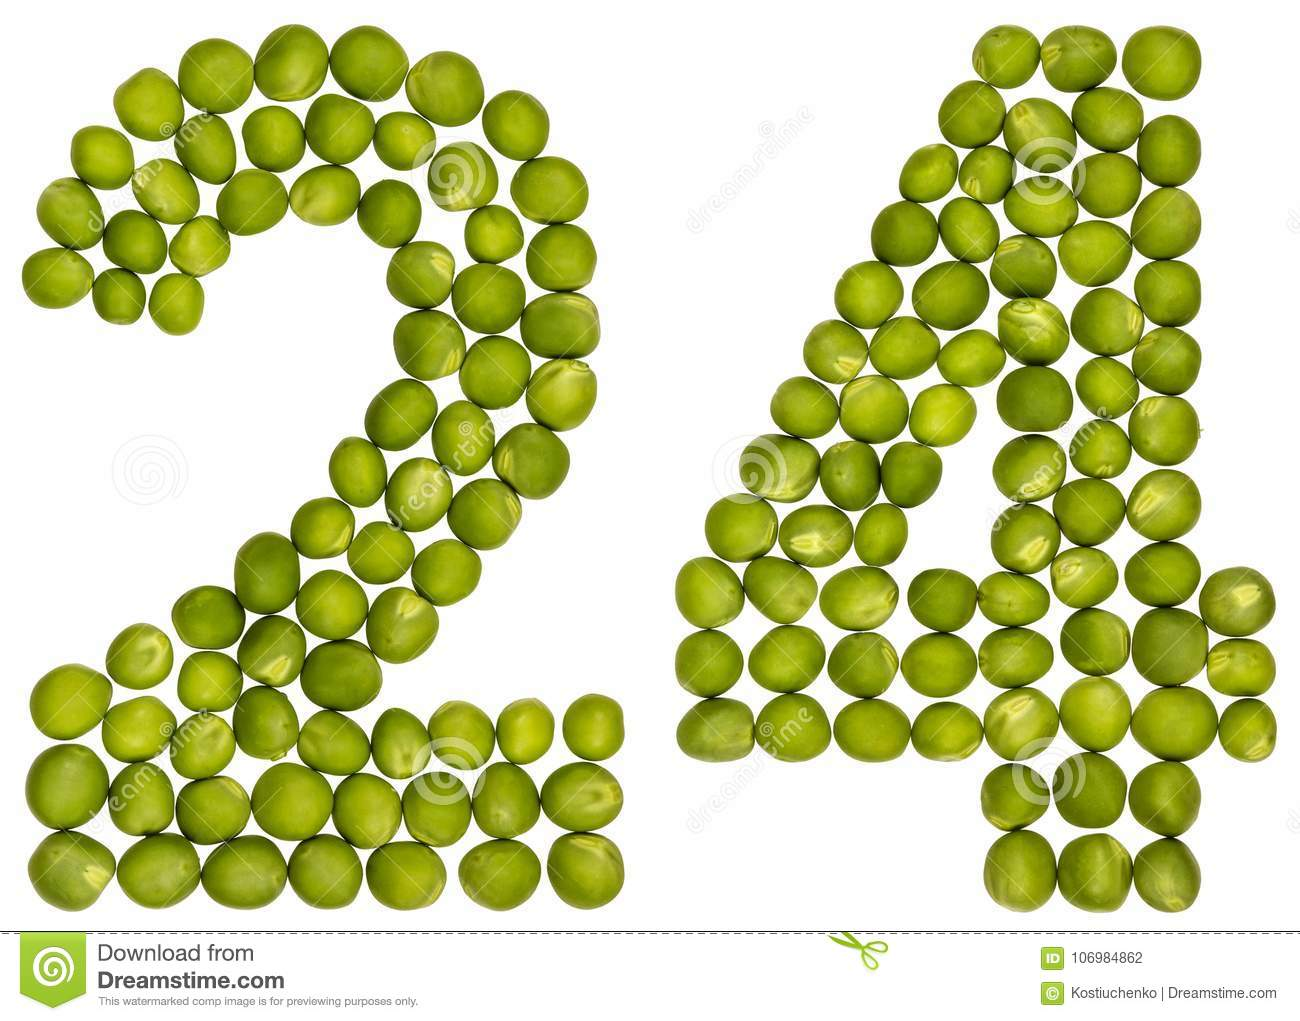 Arabic numeral 24, twenty four, from green peas, isolated on white background